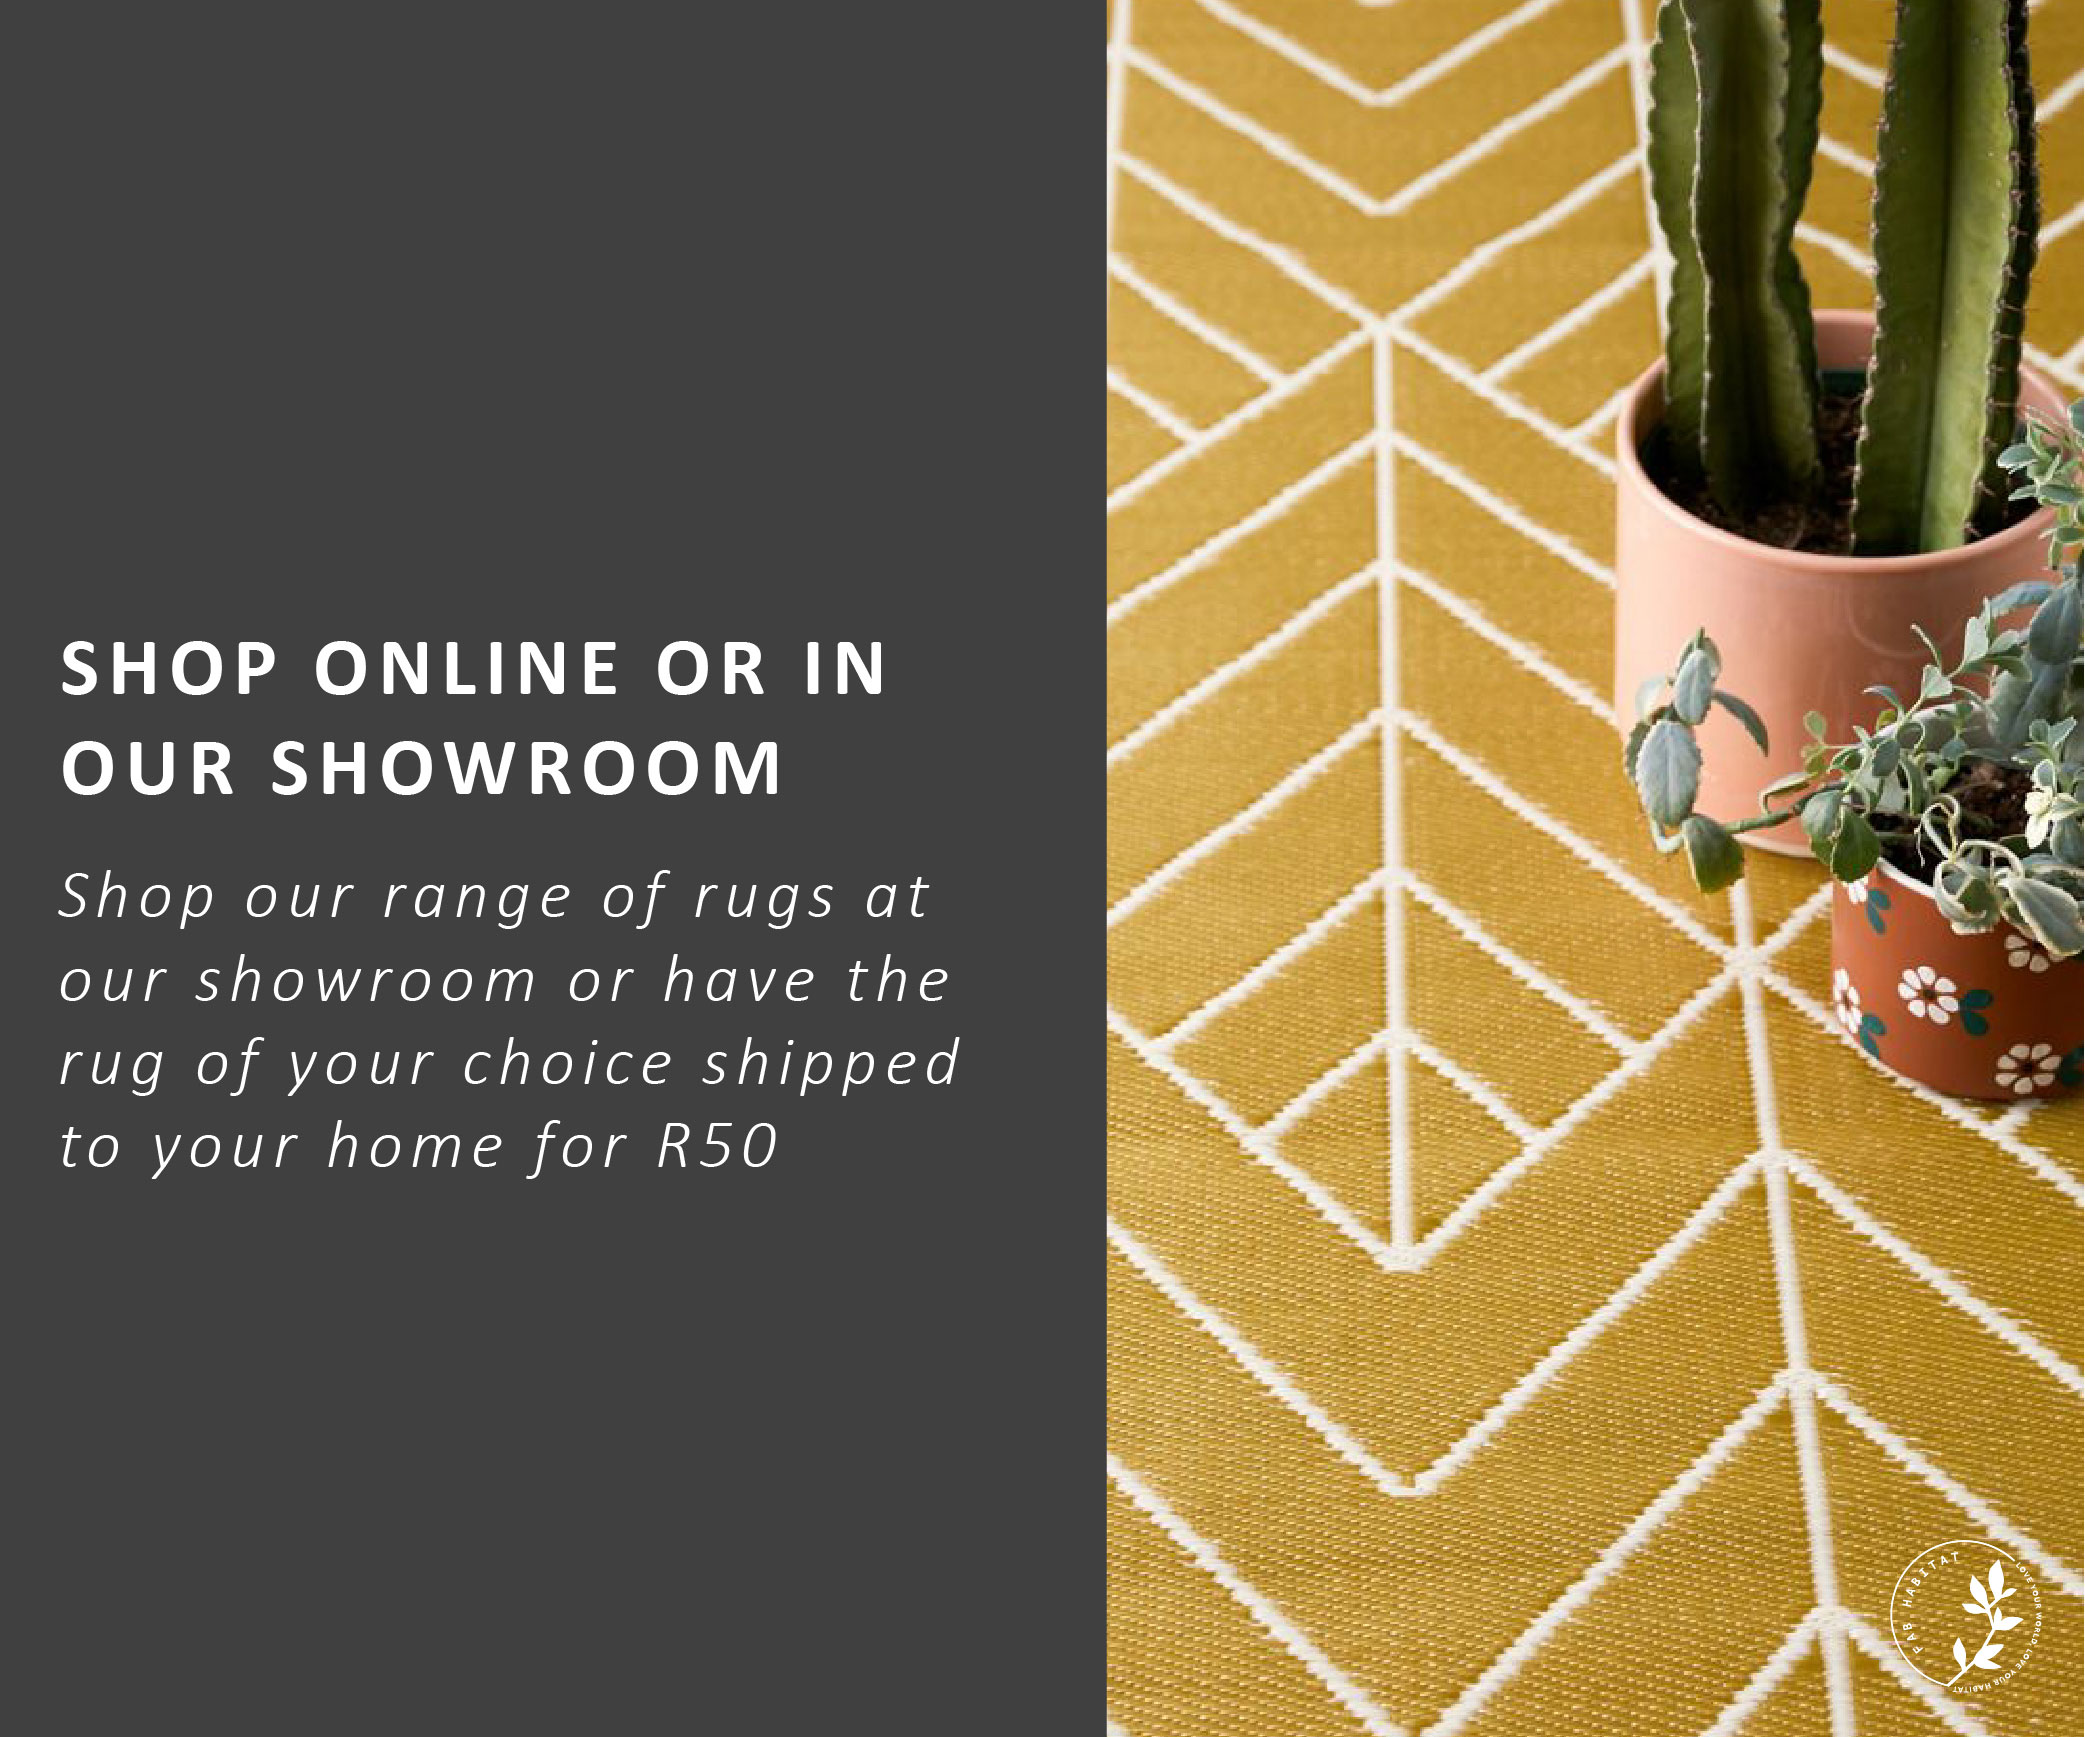 Shope-at-our-showroom-_wide-copy